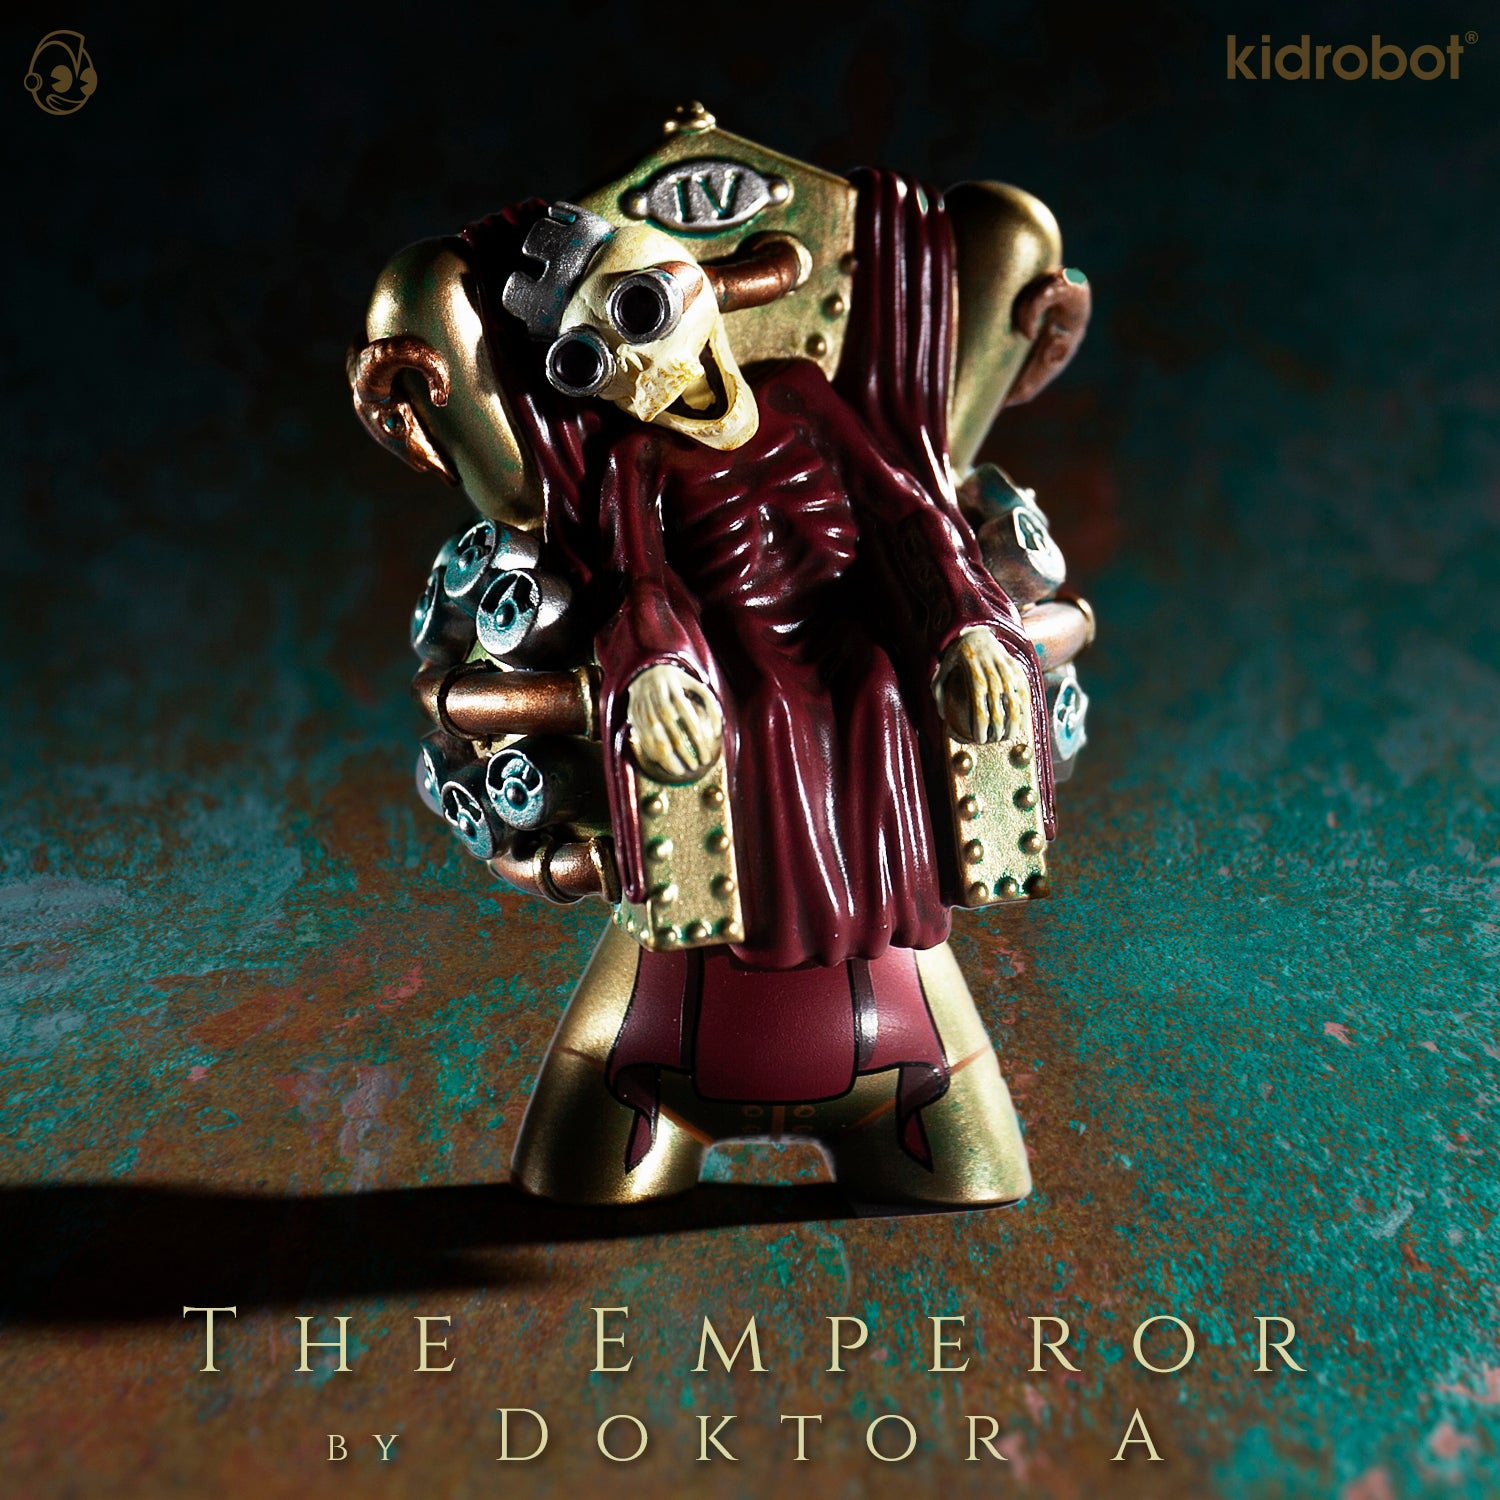 The Emperor Dunny by Doktor A